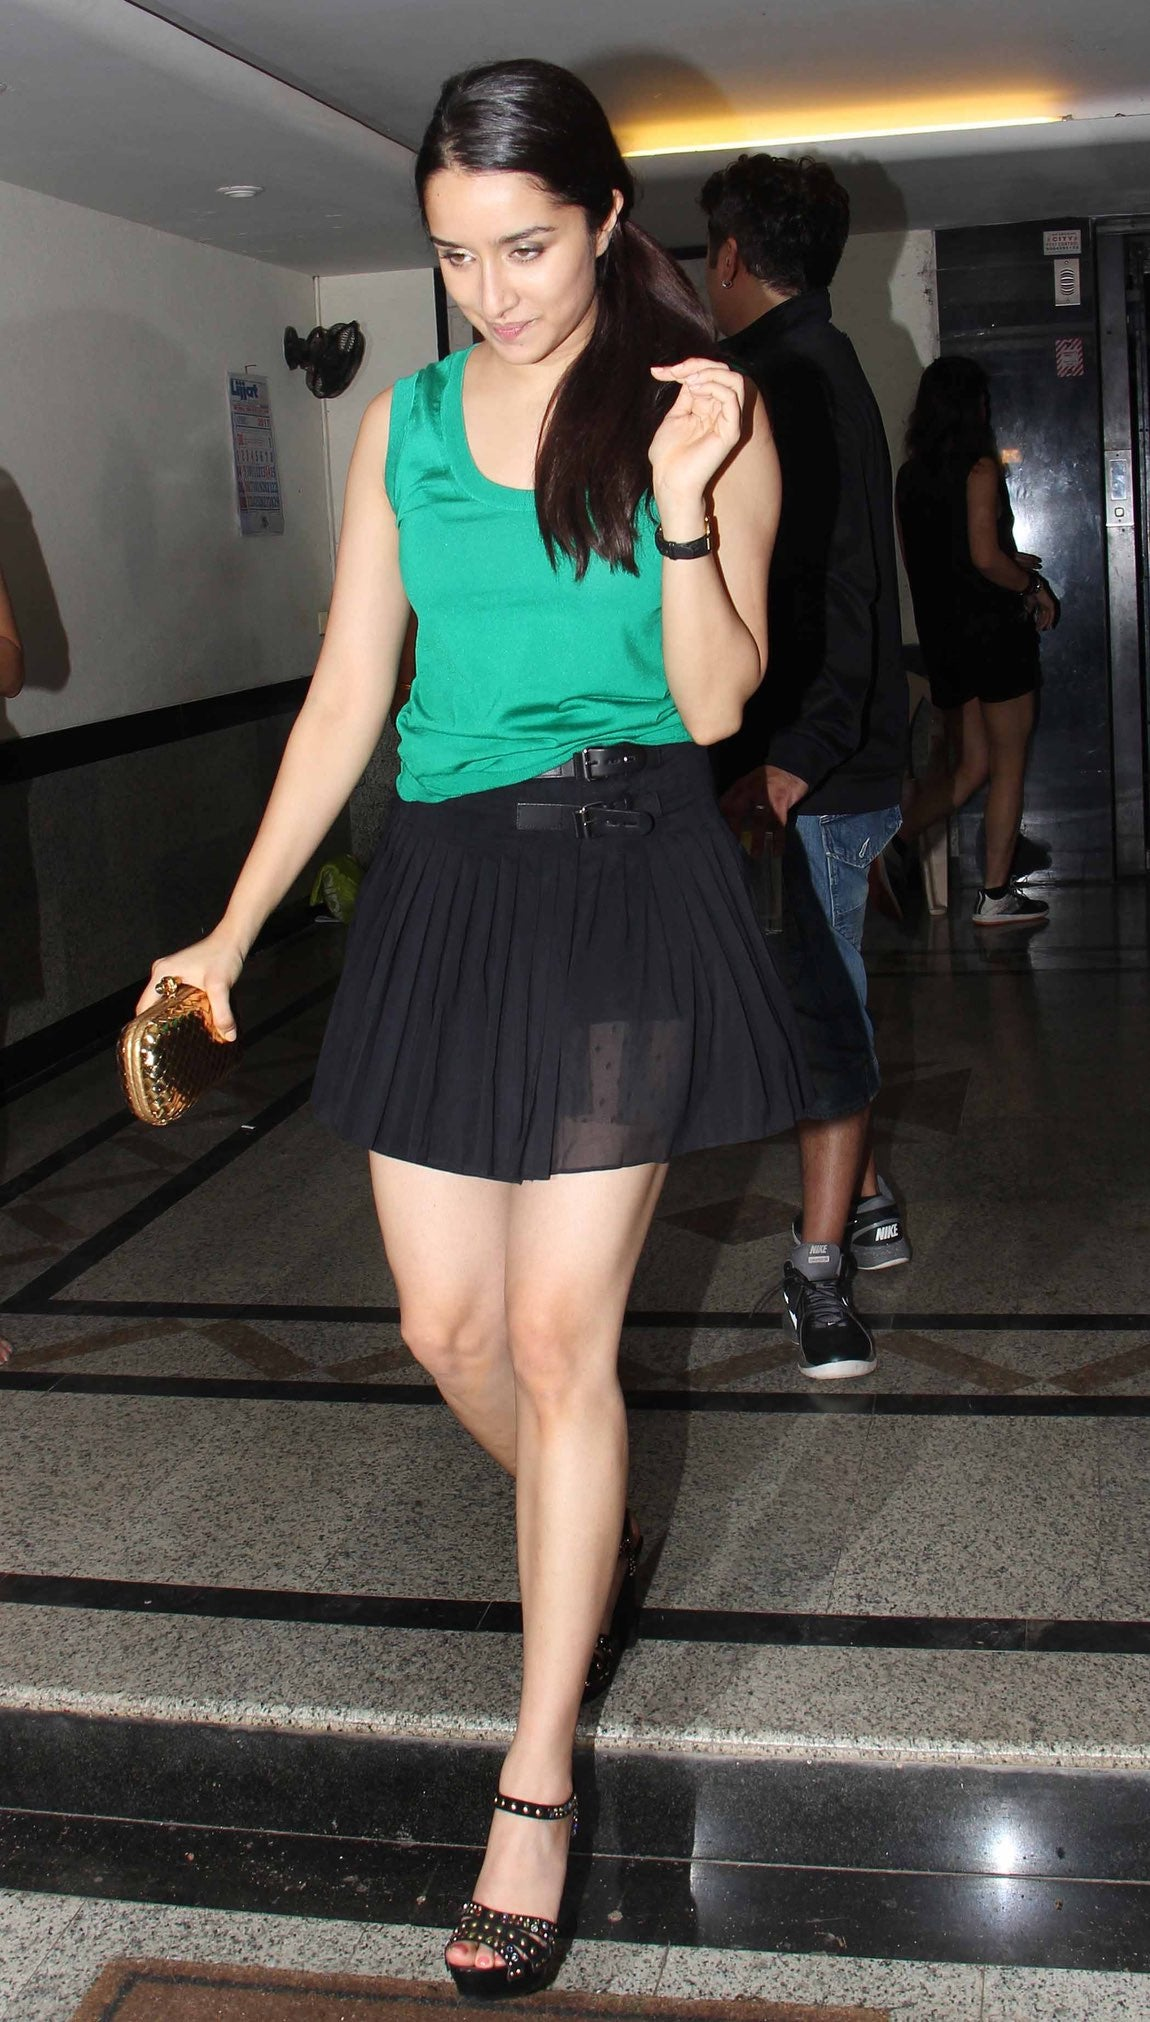 Shraddha Kapoor in Black Short Skirt Teamup With green top at Mohit Suri's Birthday bash